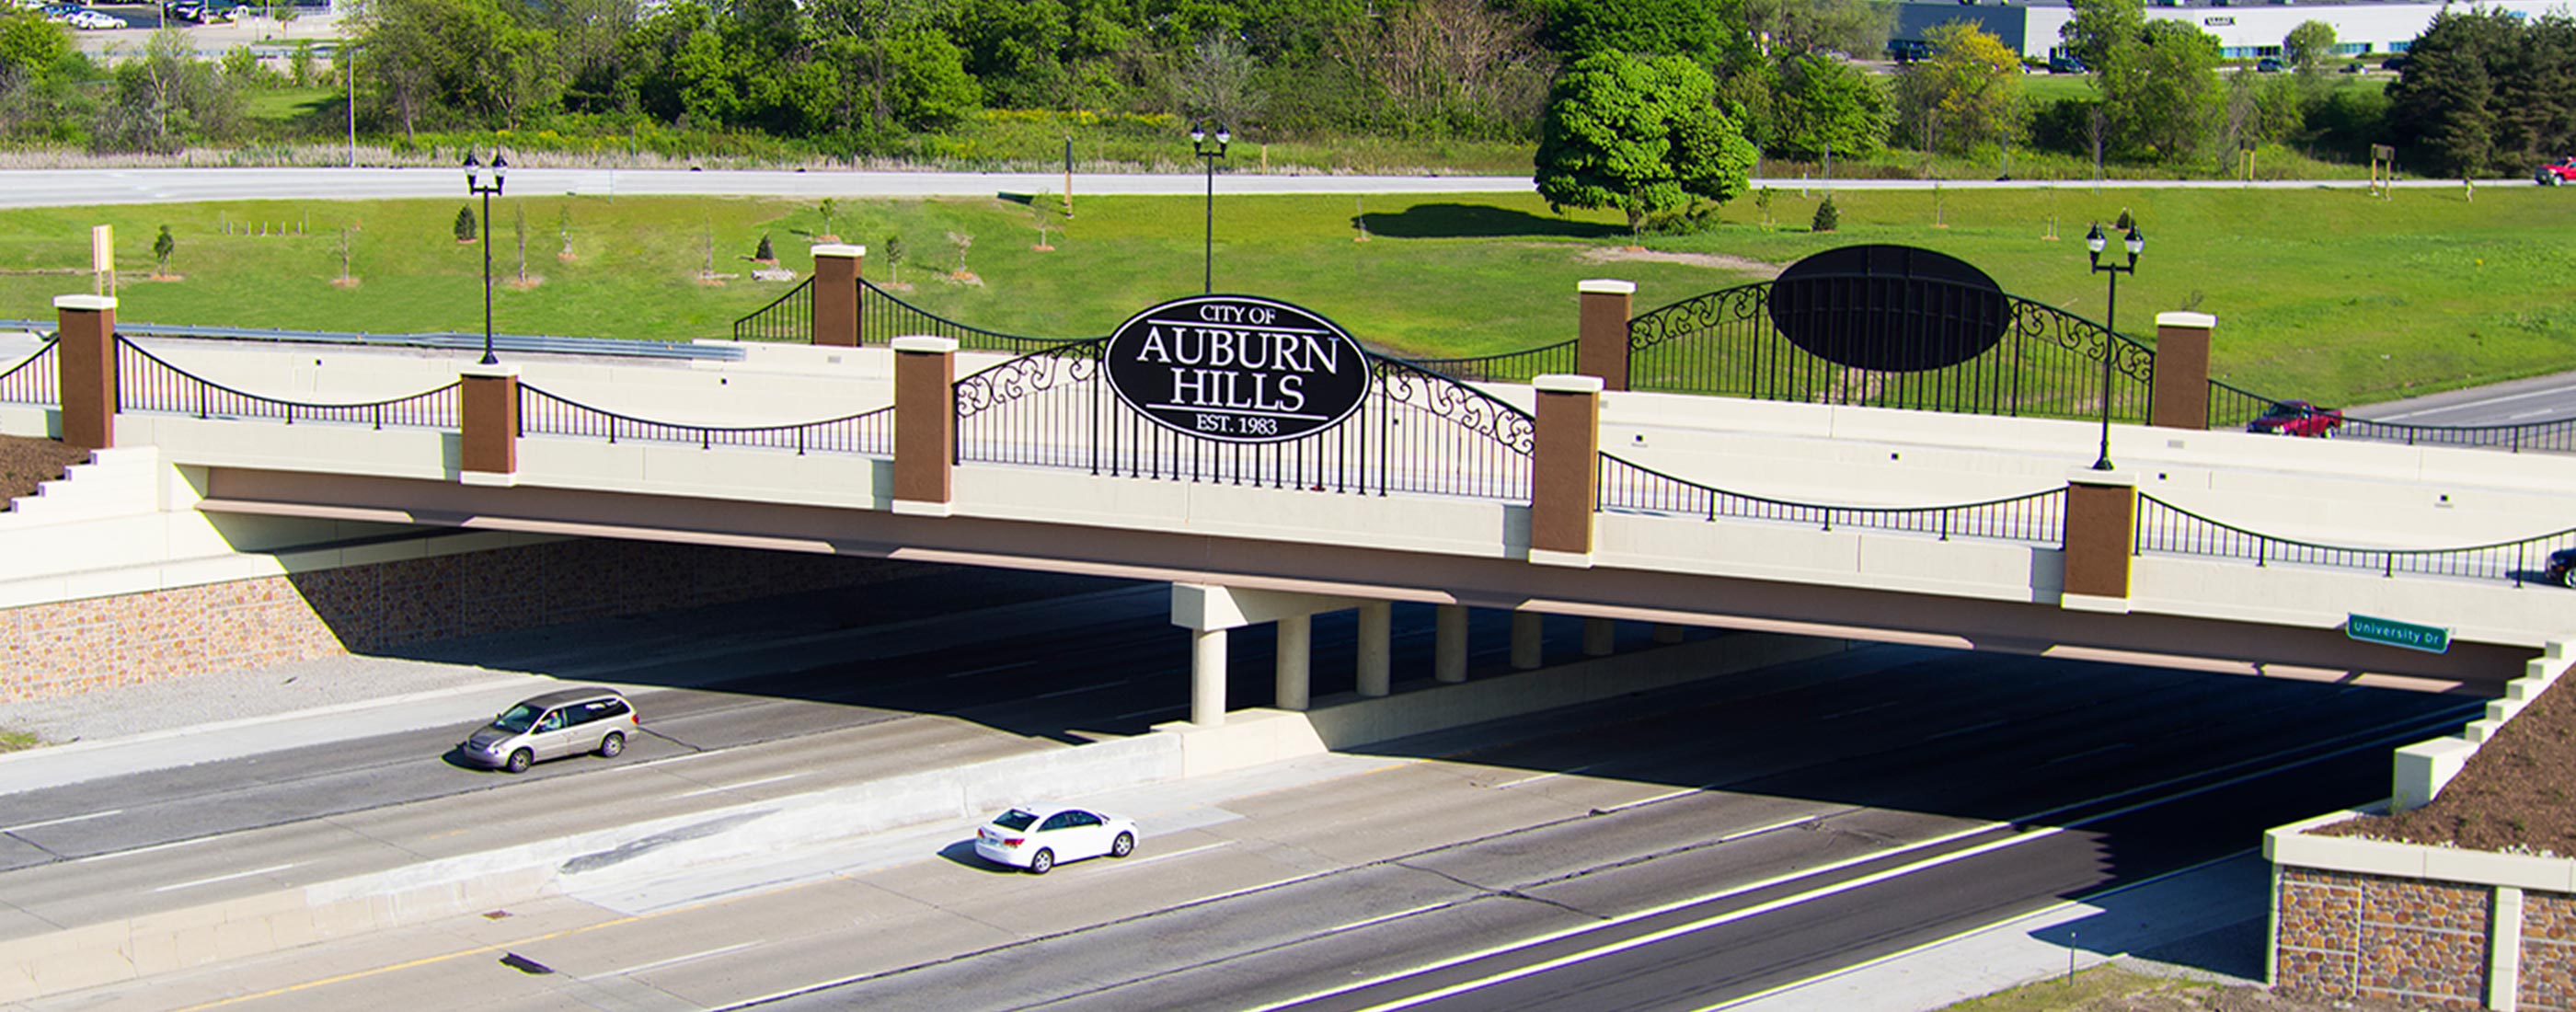 The main entryway to Auburn Hills, MI, redesigned by OHM Advisors, allows pedestrians to cross the bridge over I-75 safely.